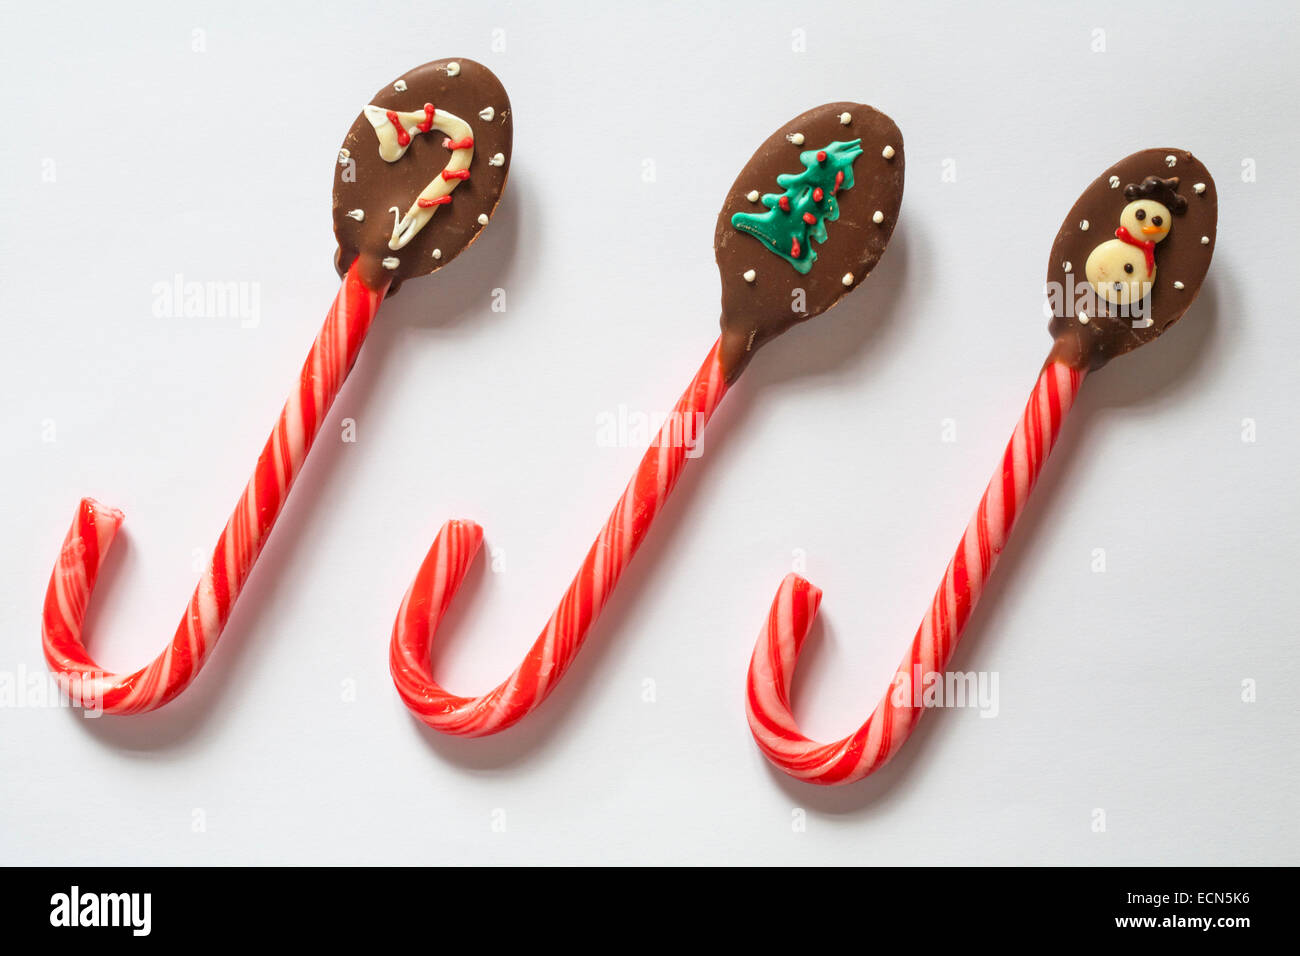 chocolate dipped candy cane with decorated with christmas themes